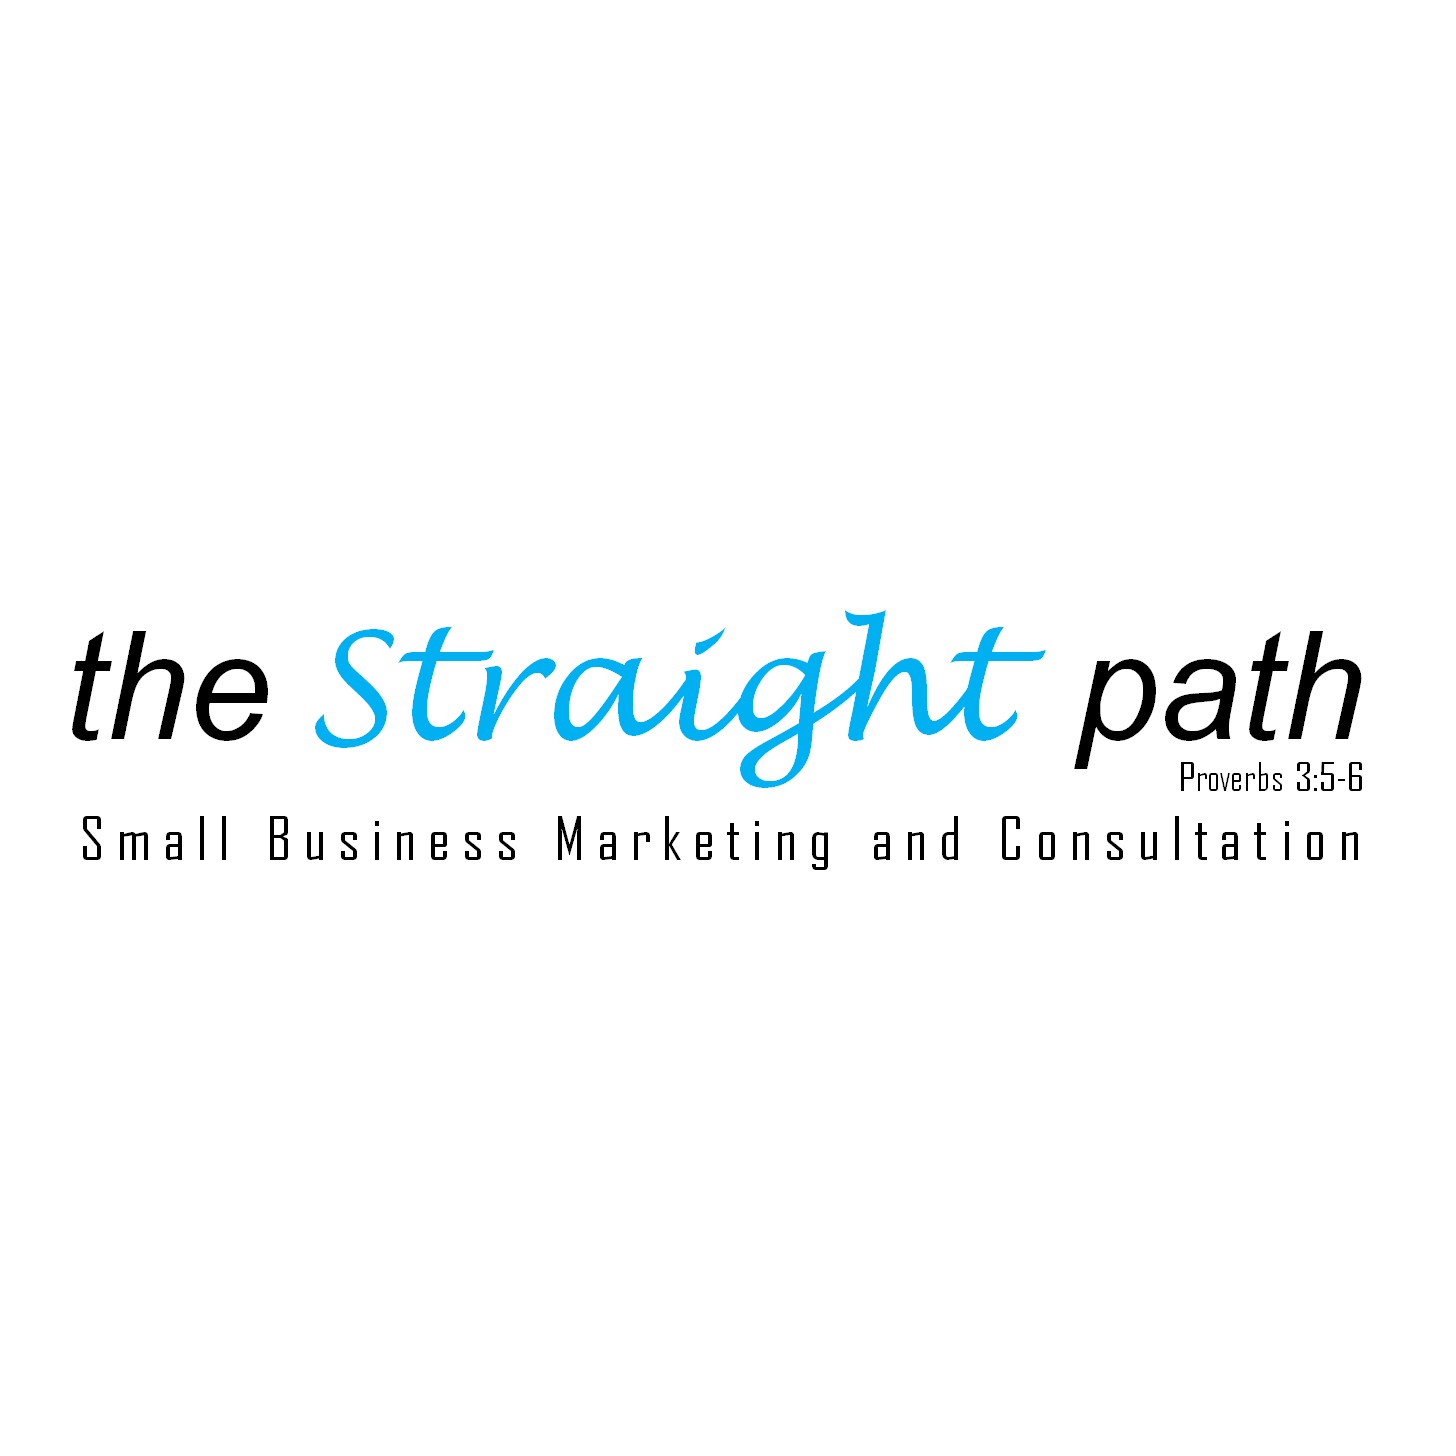 The Straight Path Marketing